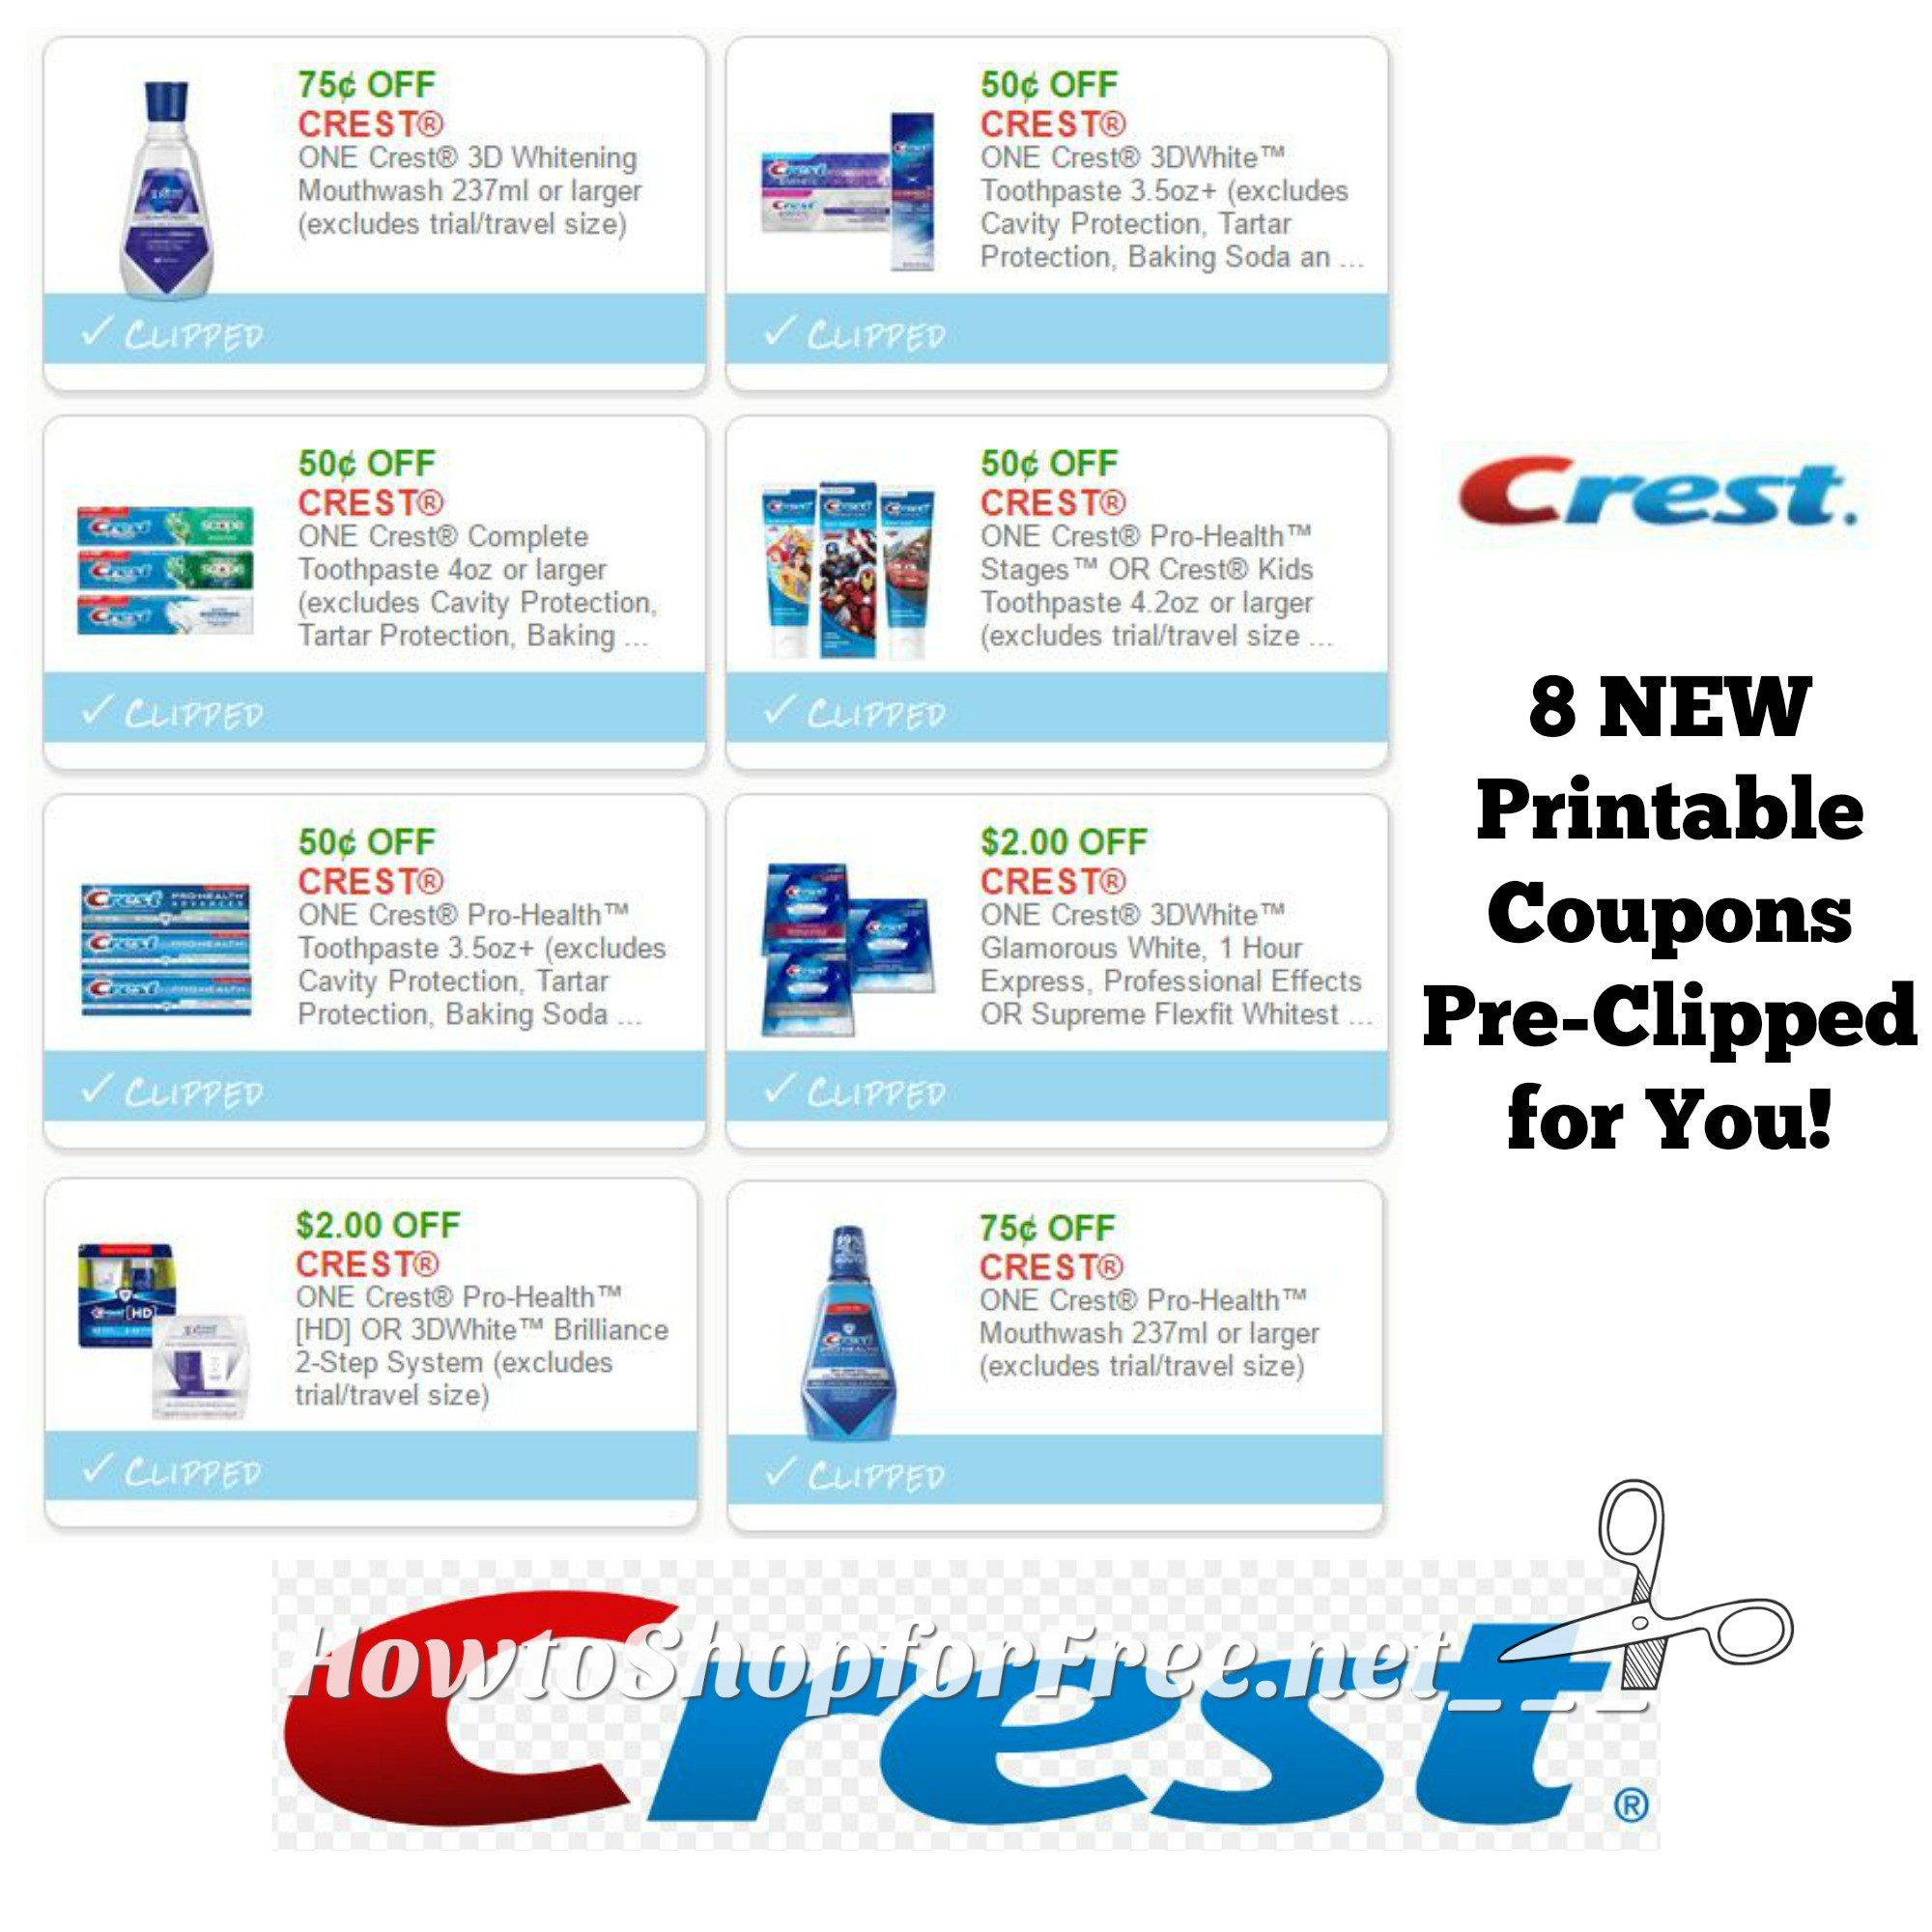 photograph relating to Crest Printable Coupons identify Clean Printable Discount coupons** 8 Crest Coupon codes Pre-Clipped for Your self